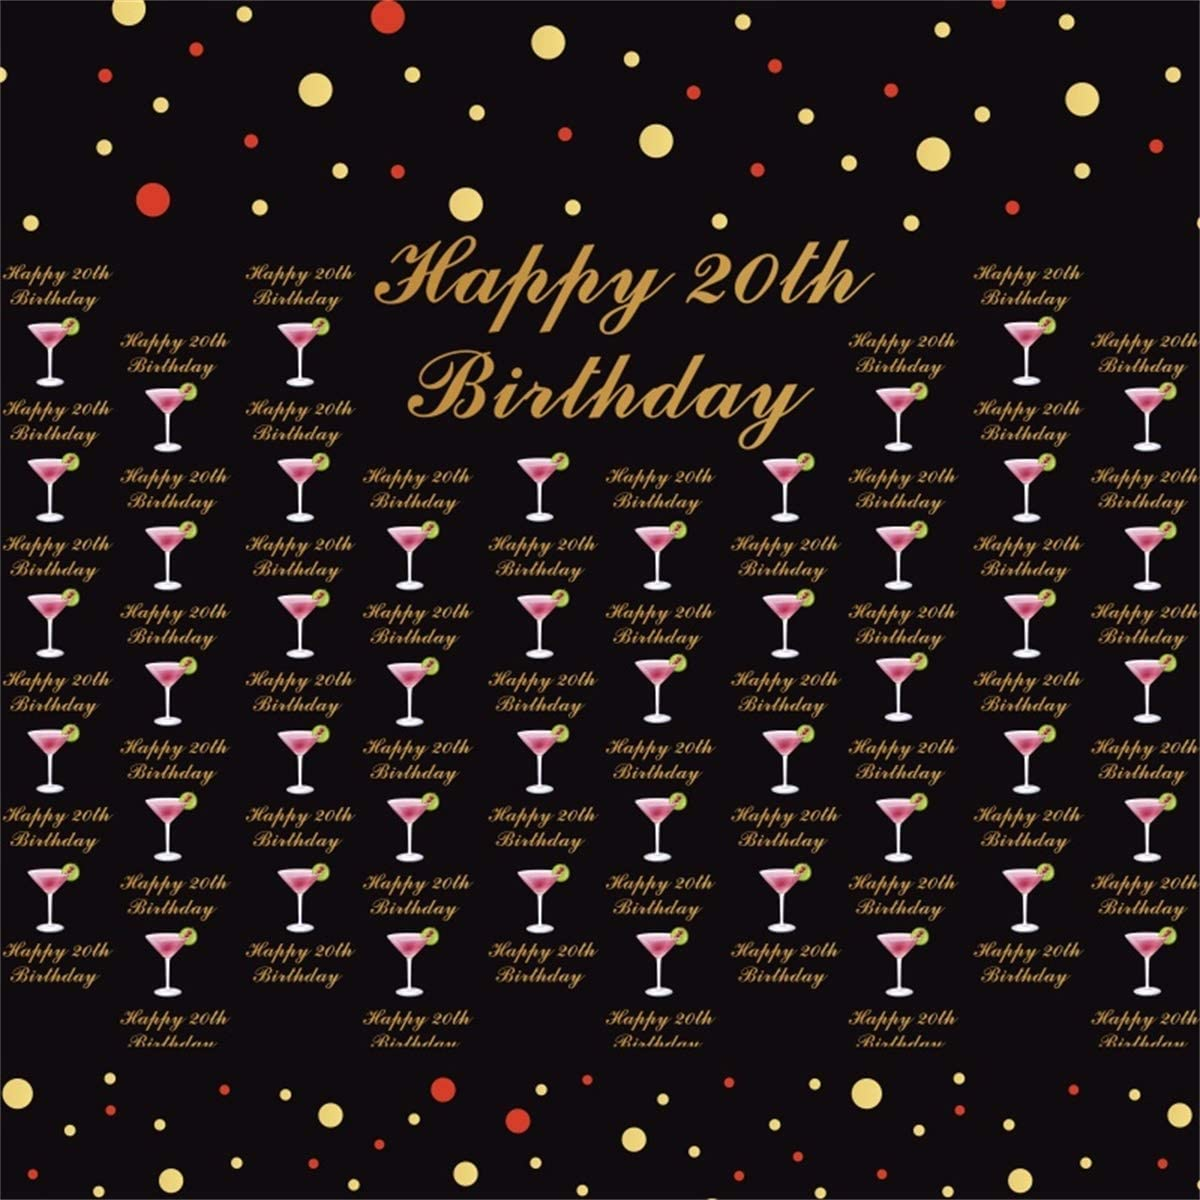 Yeele 20th Birthday Backdrop Twenty Year Old Birthday Party Photography Backdrop Daughter and Son Artistic Portrait 10x10ft Room Decor Students Acting Show Photo Booth Photoshoot Props